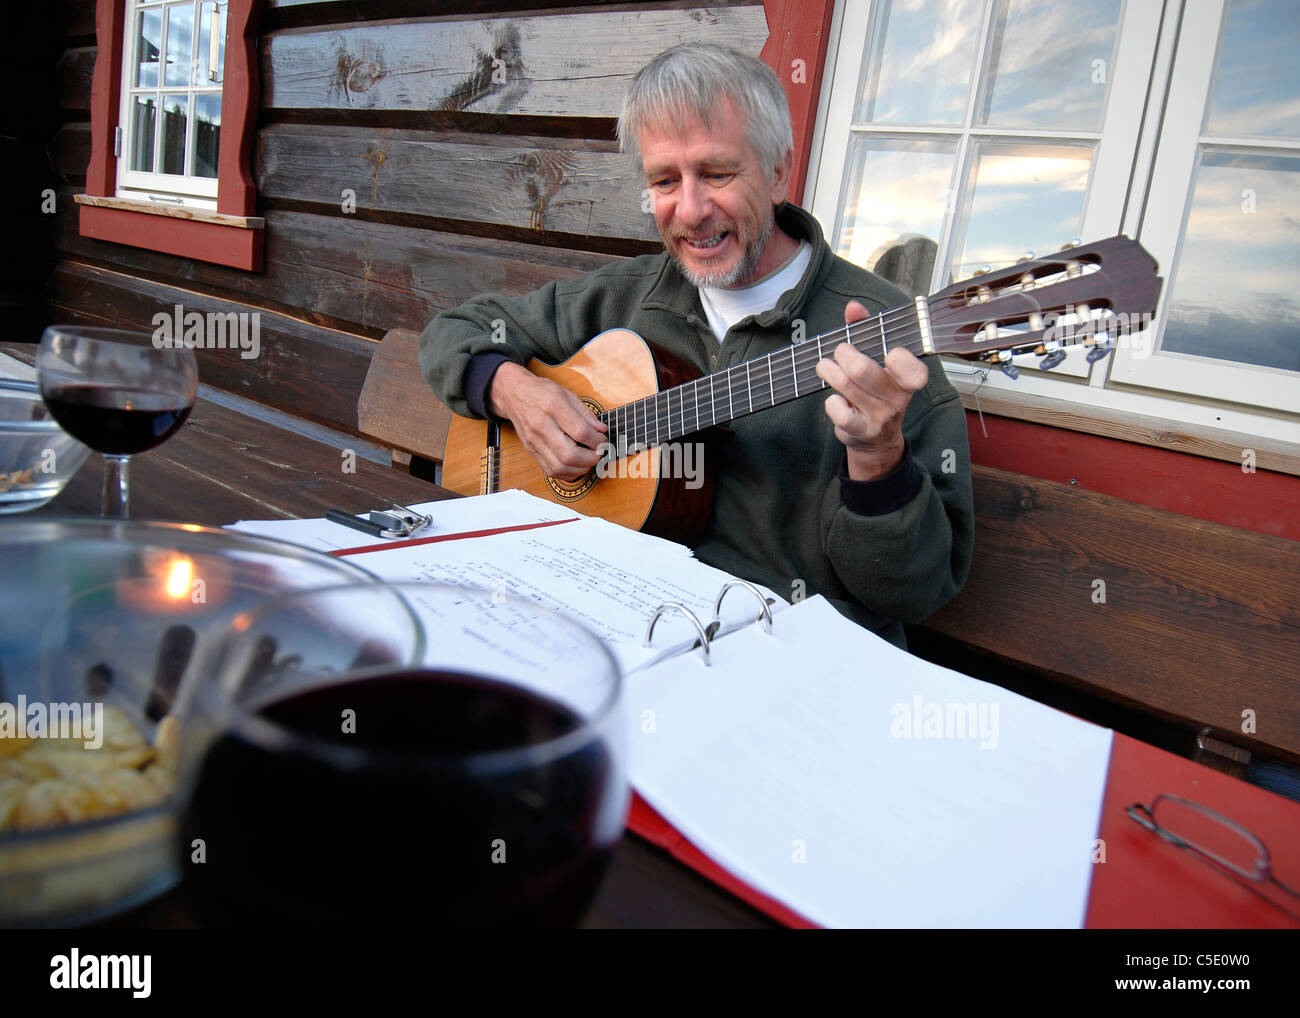 Middle-aged man playing the guitar at dining table - Stock Image